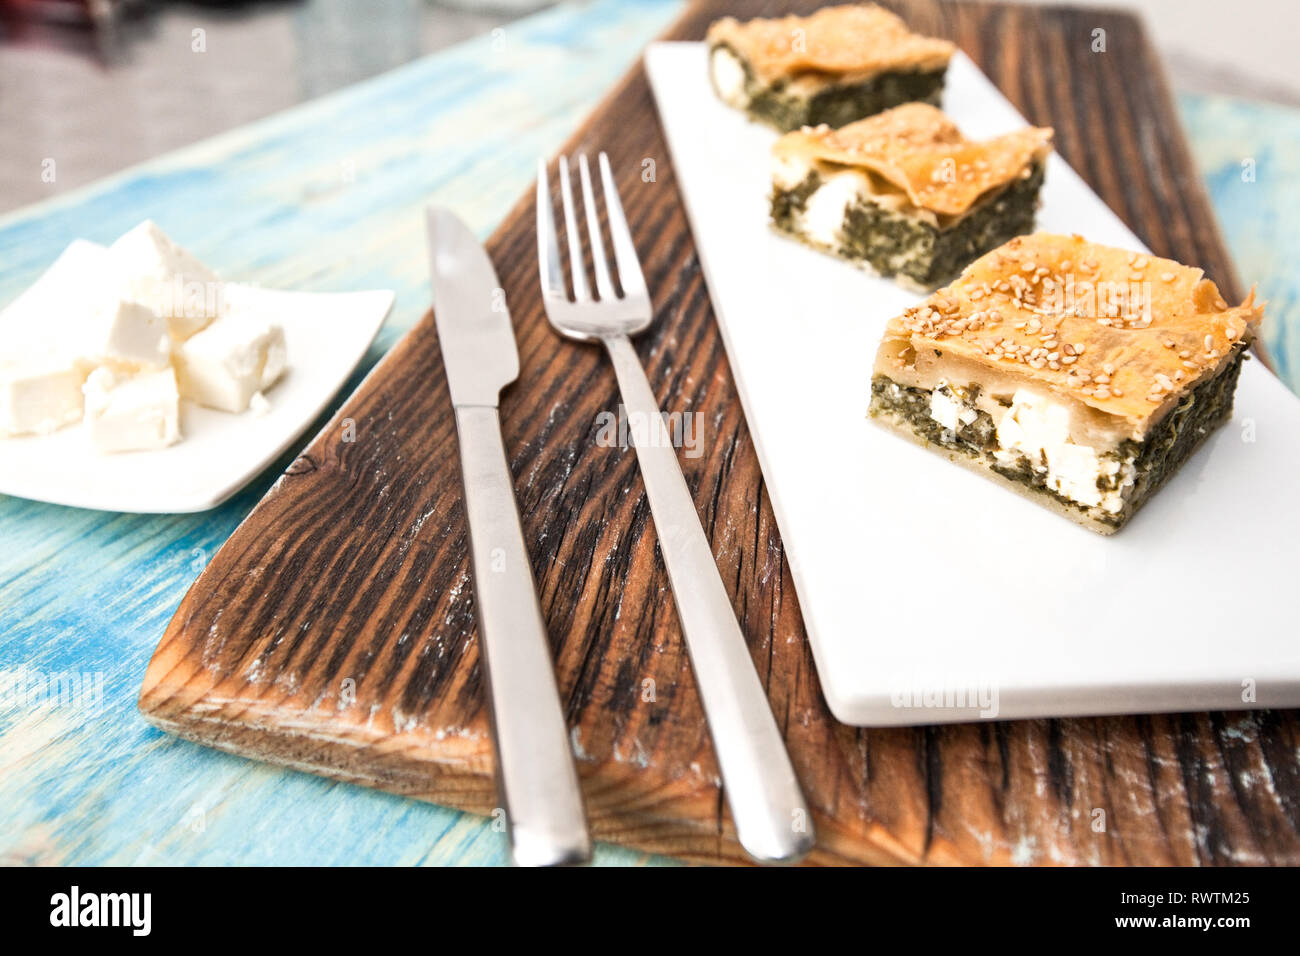 Strudel with spinach and ricotta on a dark wood background. Stock Photo